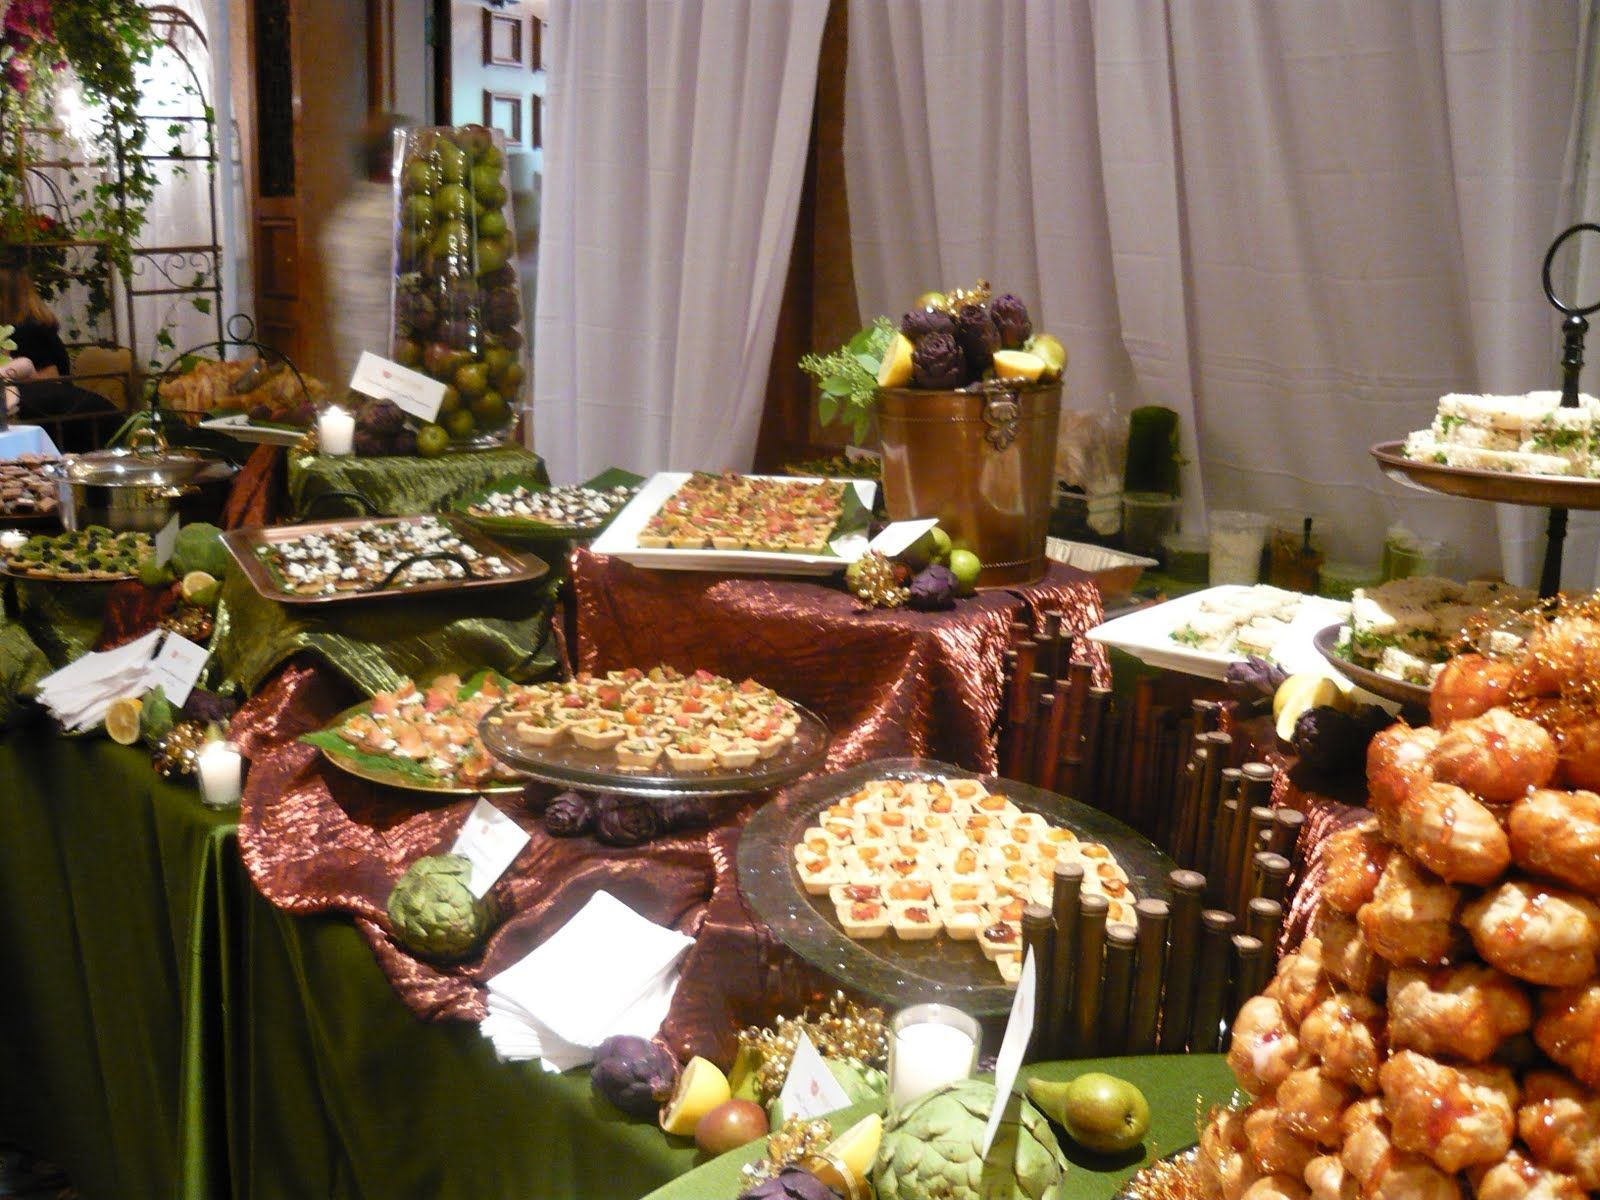 Beautiful buffet table photos House Beautiful Tablescapes: Setting a Stylish Table